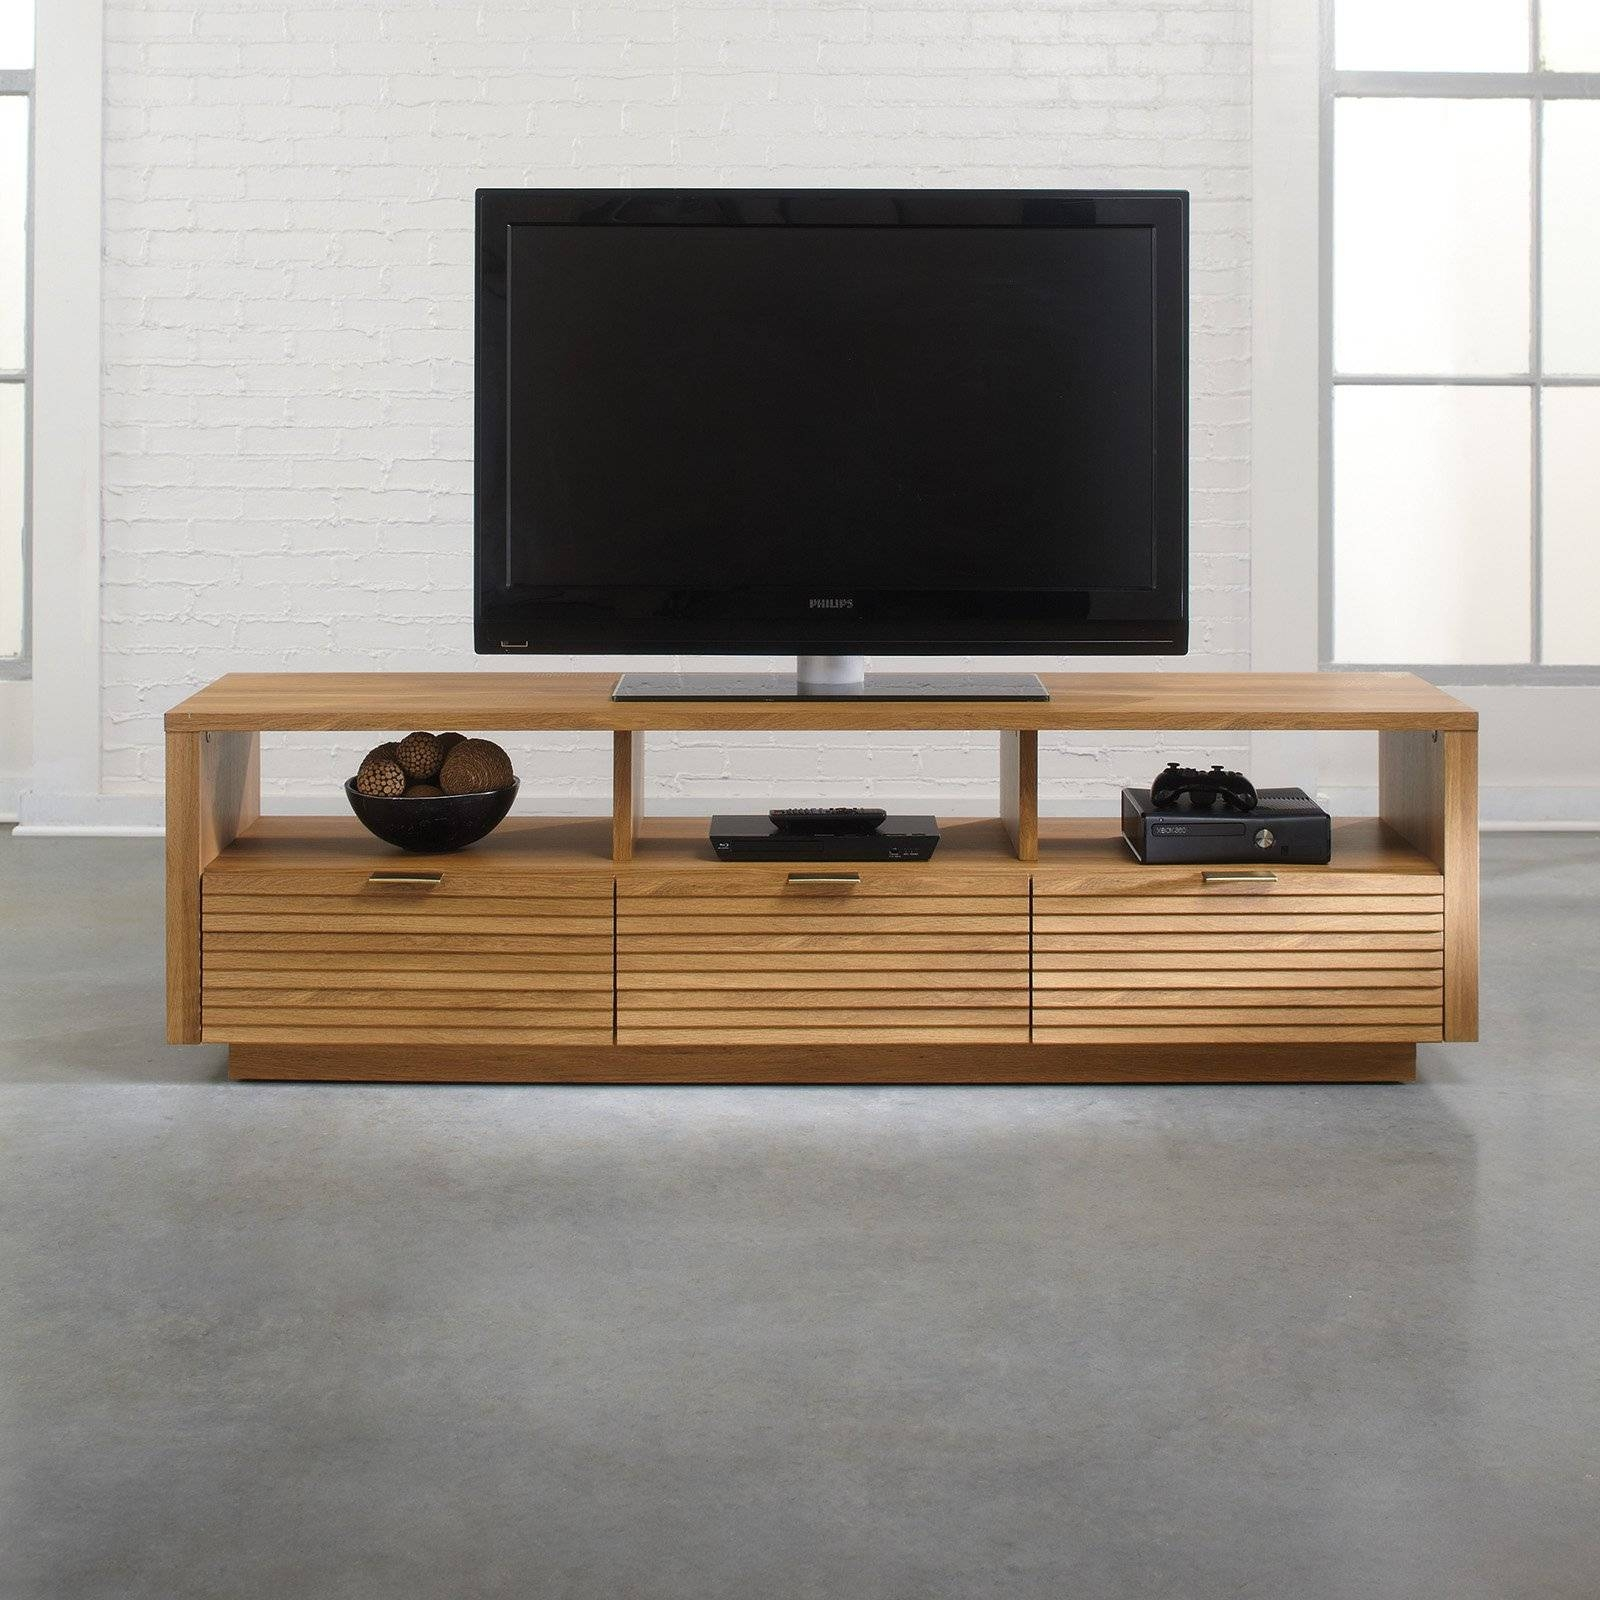 Belham Living Carter Mid Century Modern Tv Stand | Hayneedle With Low Profile Contemporary Tv Stands (View 9 of 15)